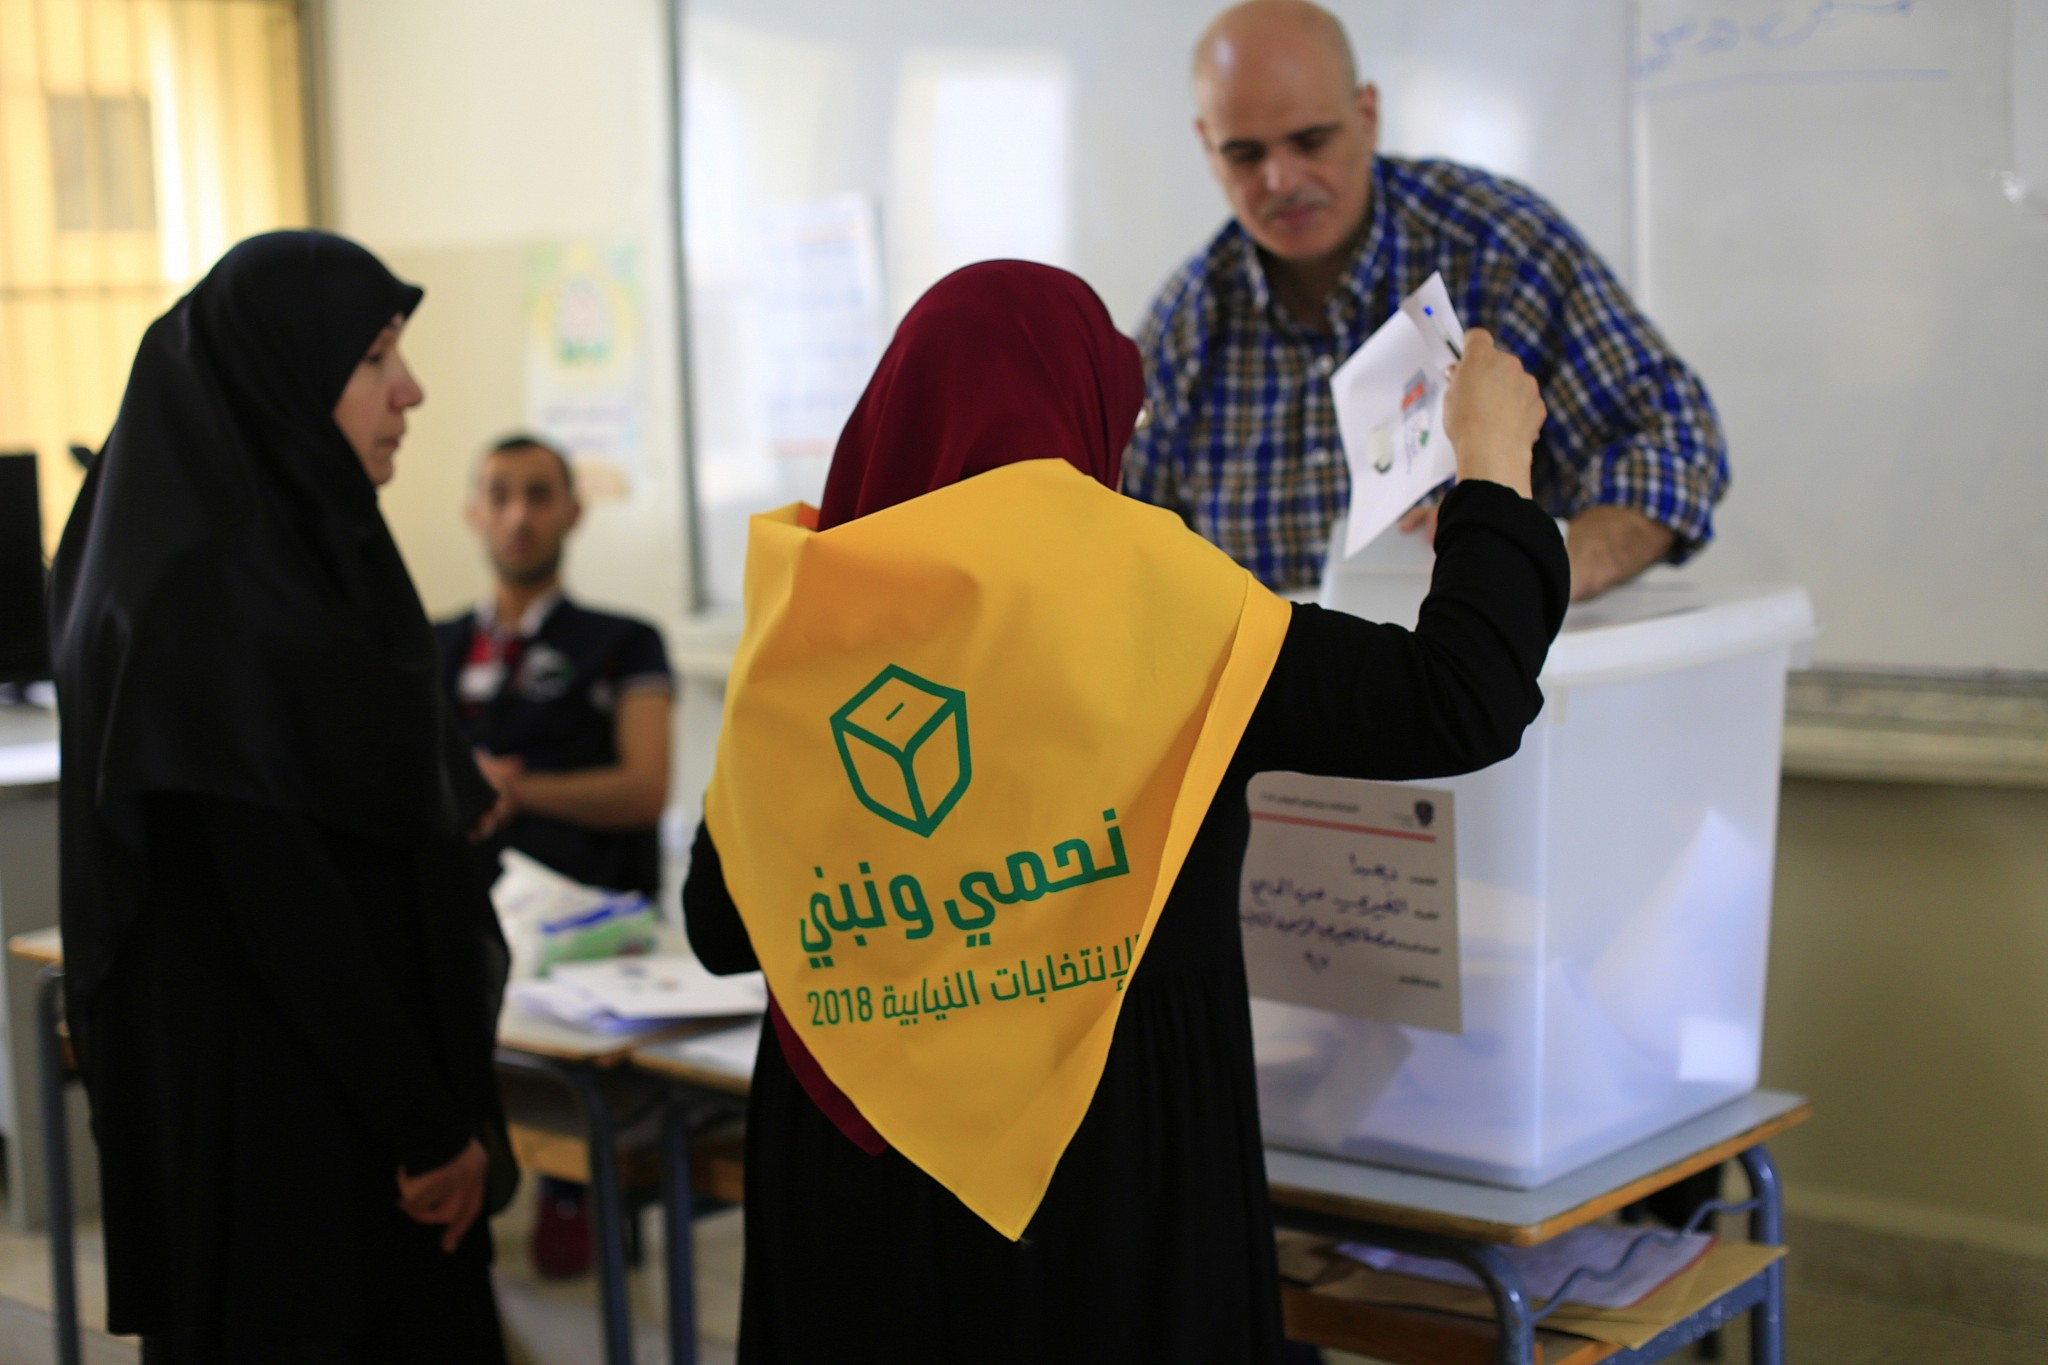 Lebanese line up for vote billed as Riyadh-Tehran battle | The Times of Israel